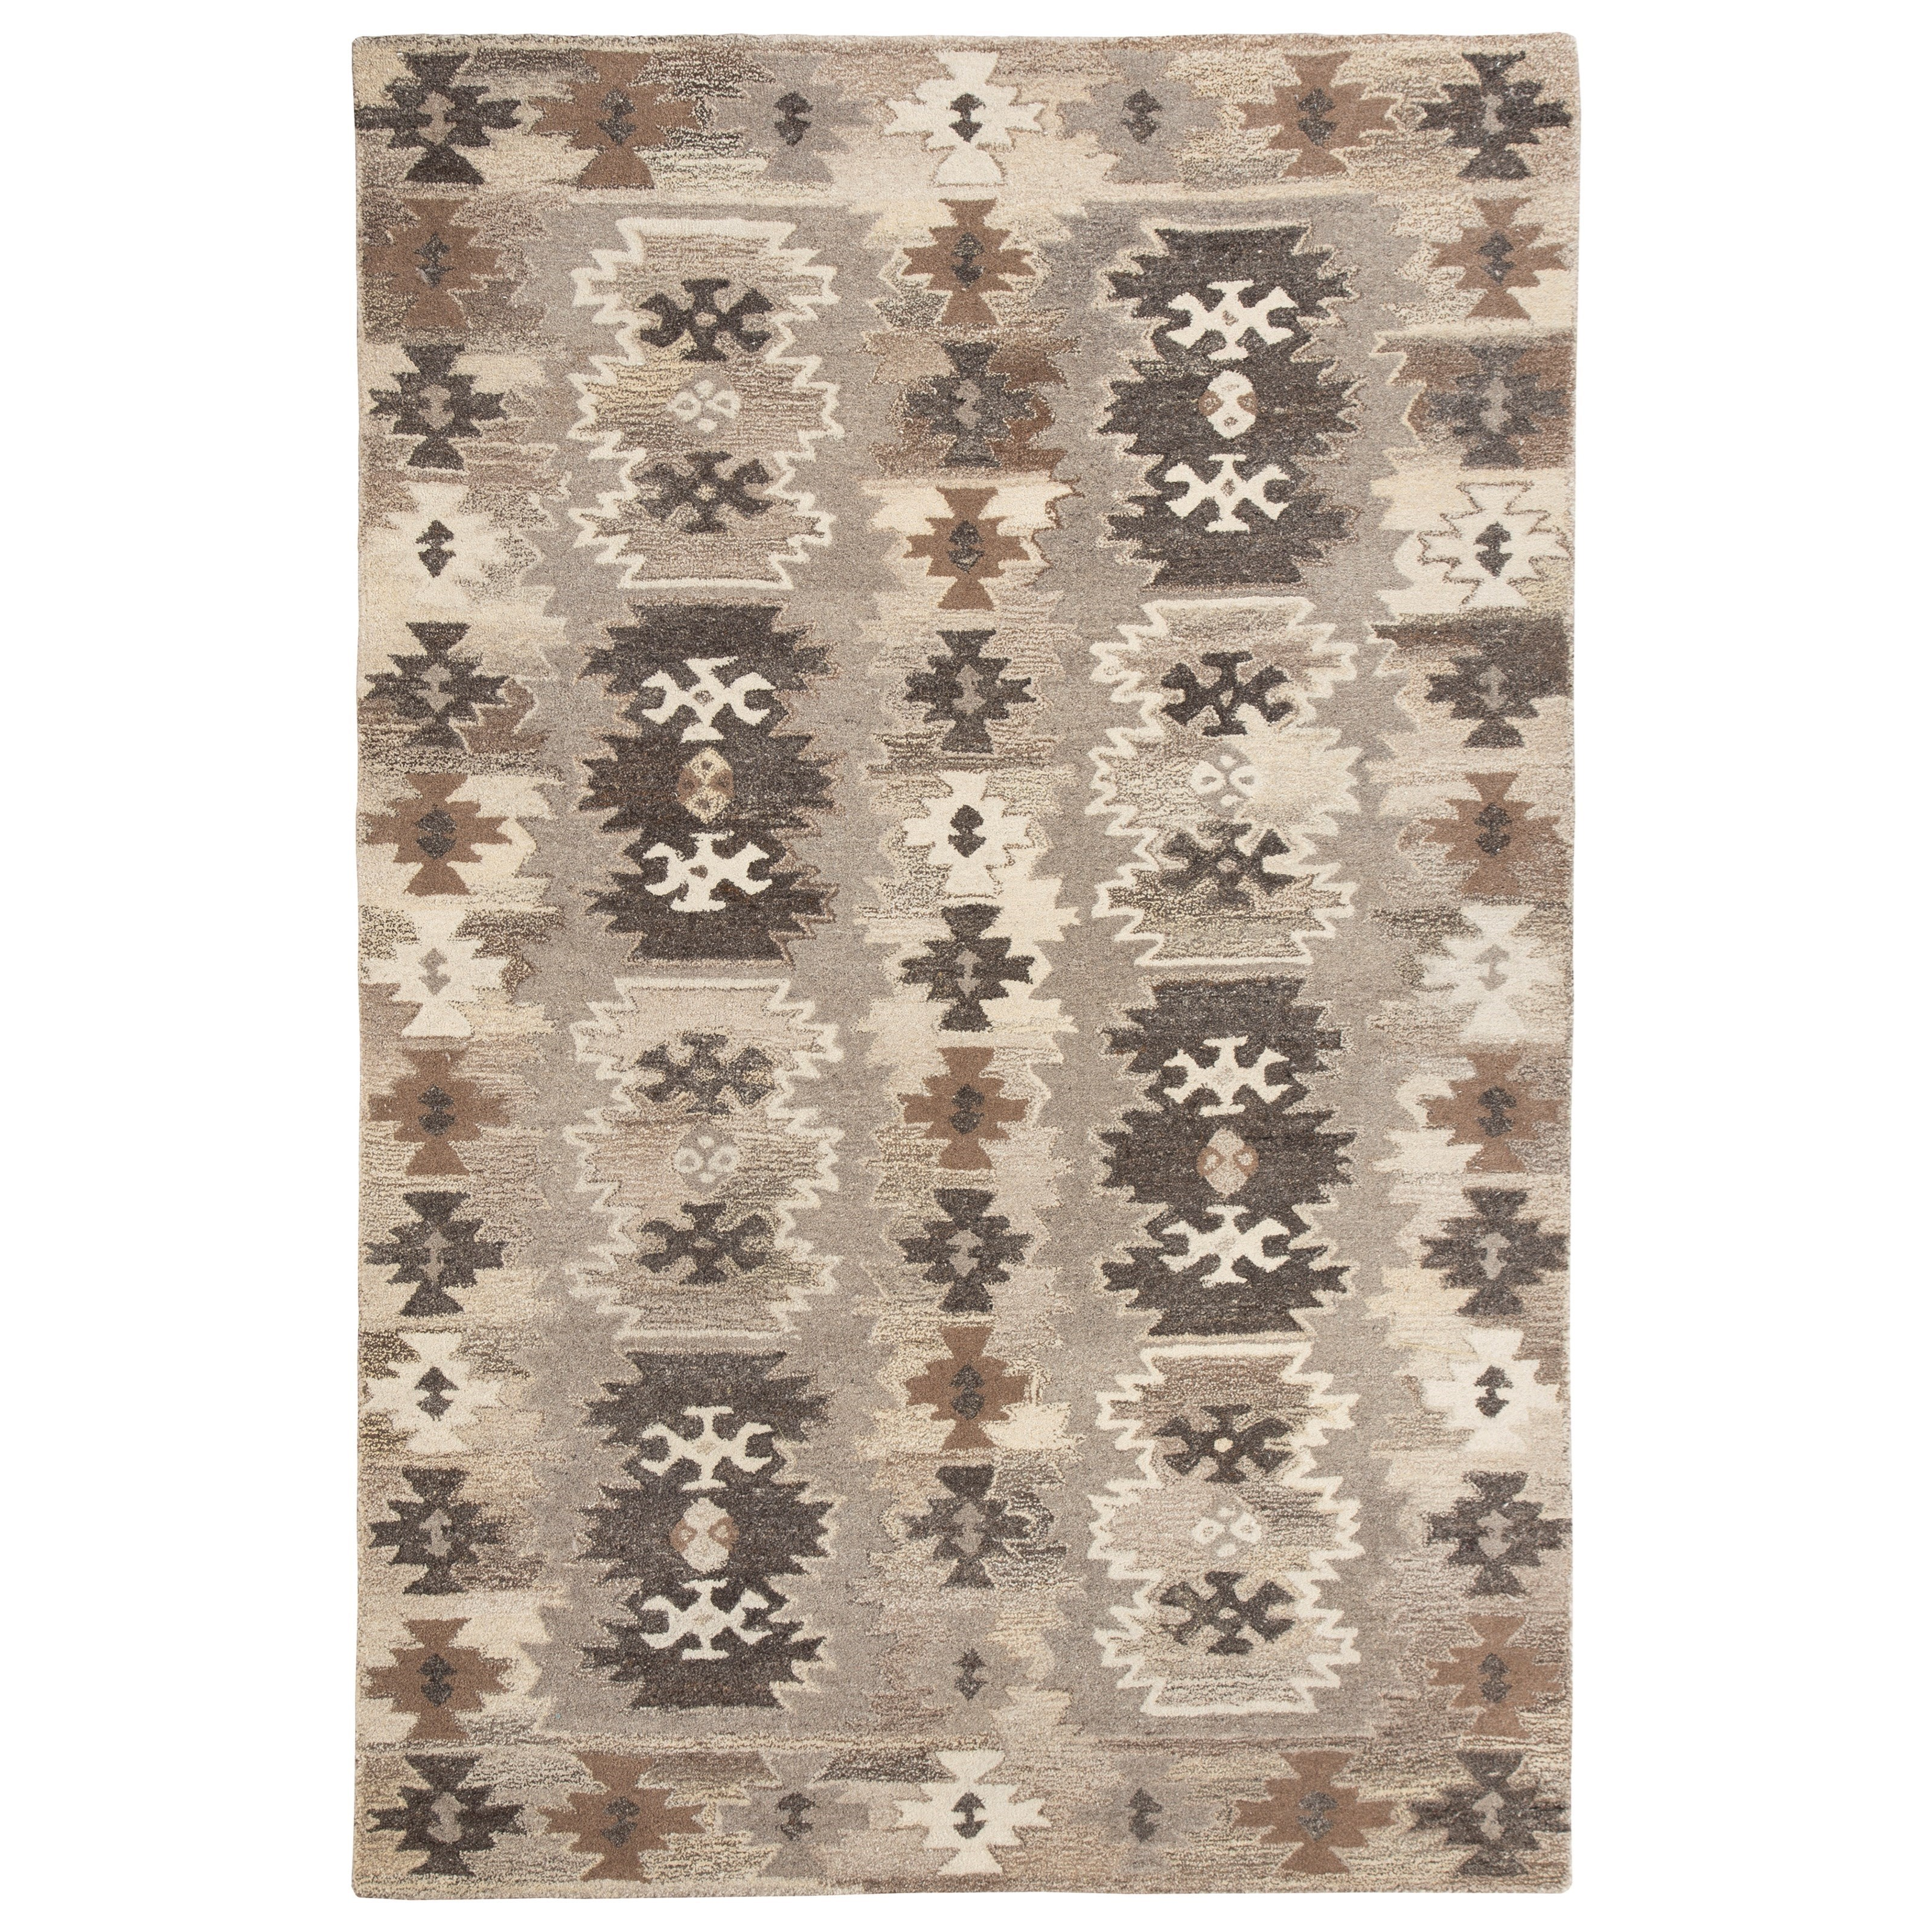 Signature Design by Ashley Transitional Area Rugs Porcinni Gray Large Rug - Item Number: R401521